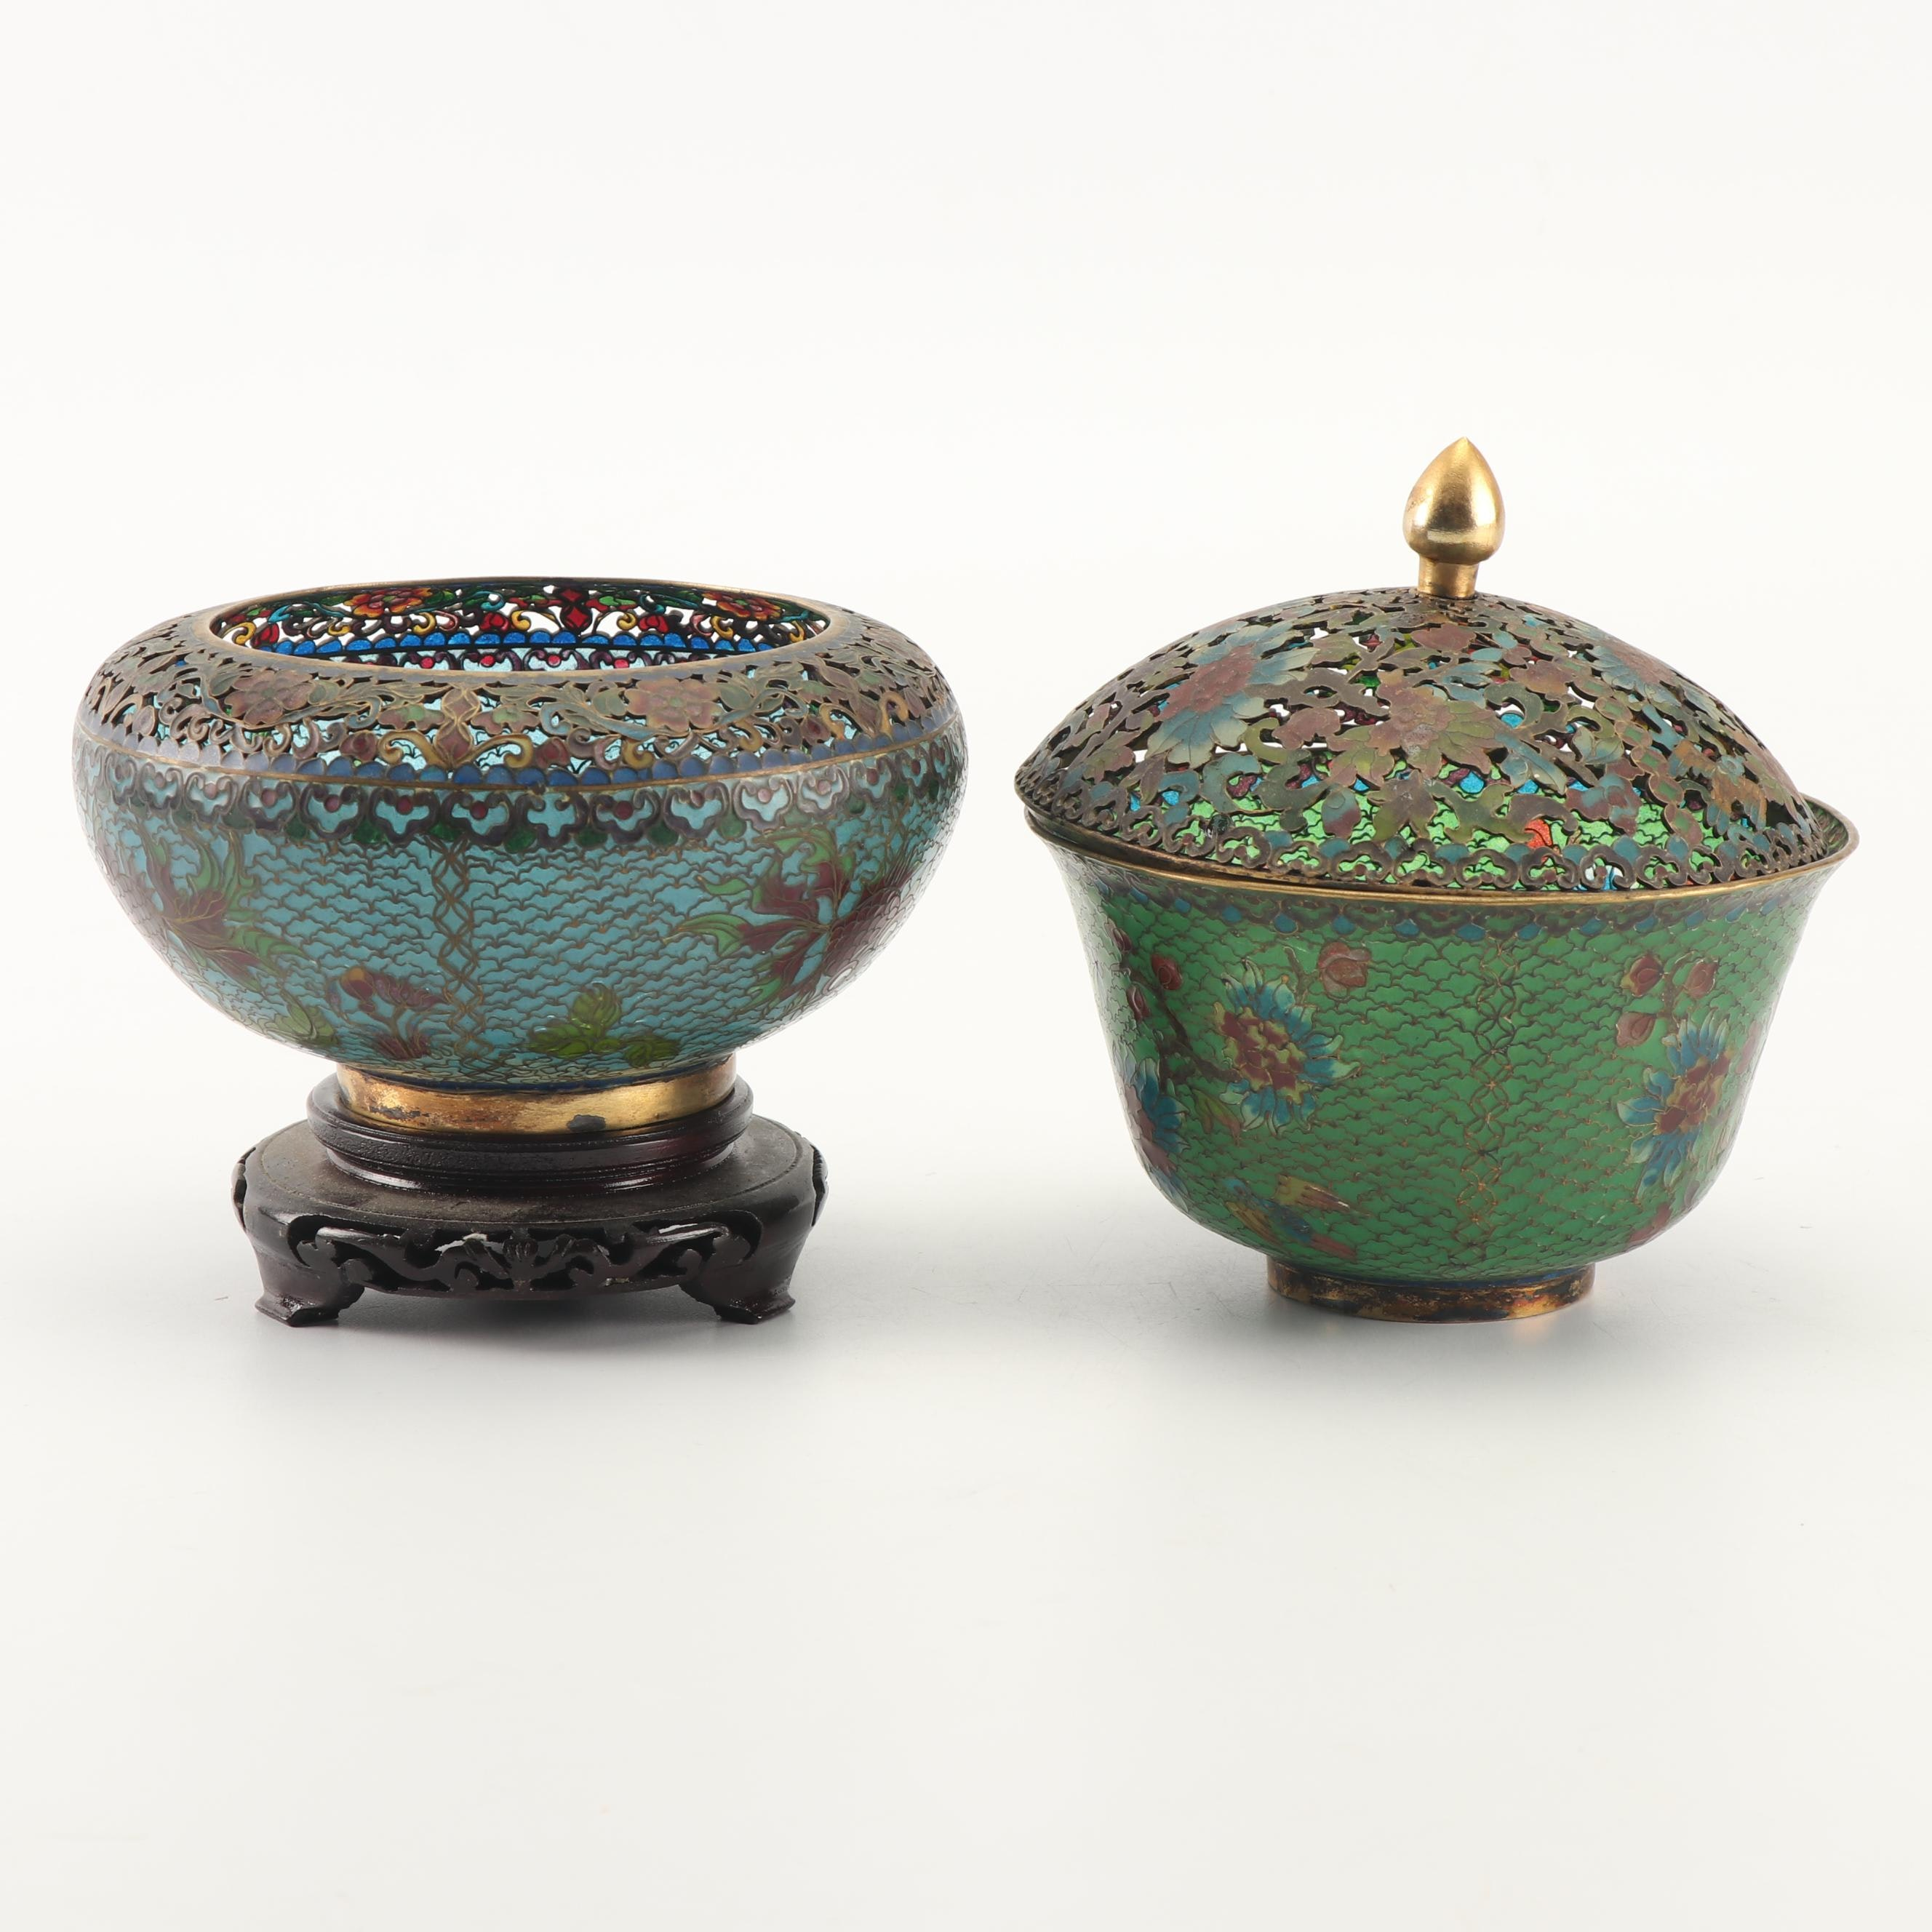 Chinese Plique-a-Jour Bowl and Lidded Jar